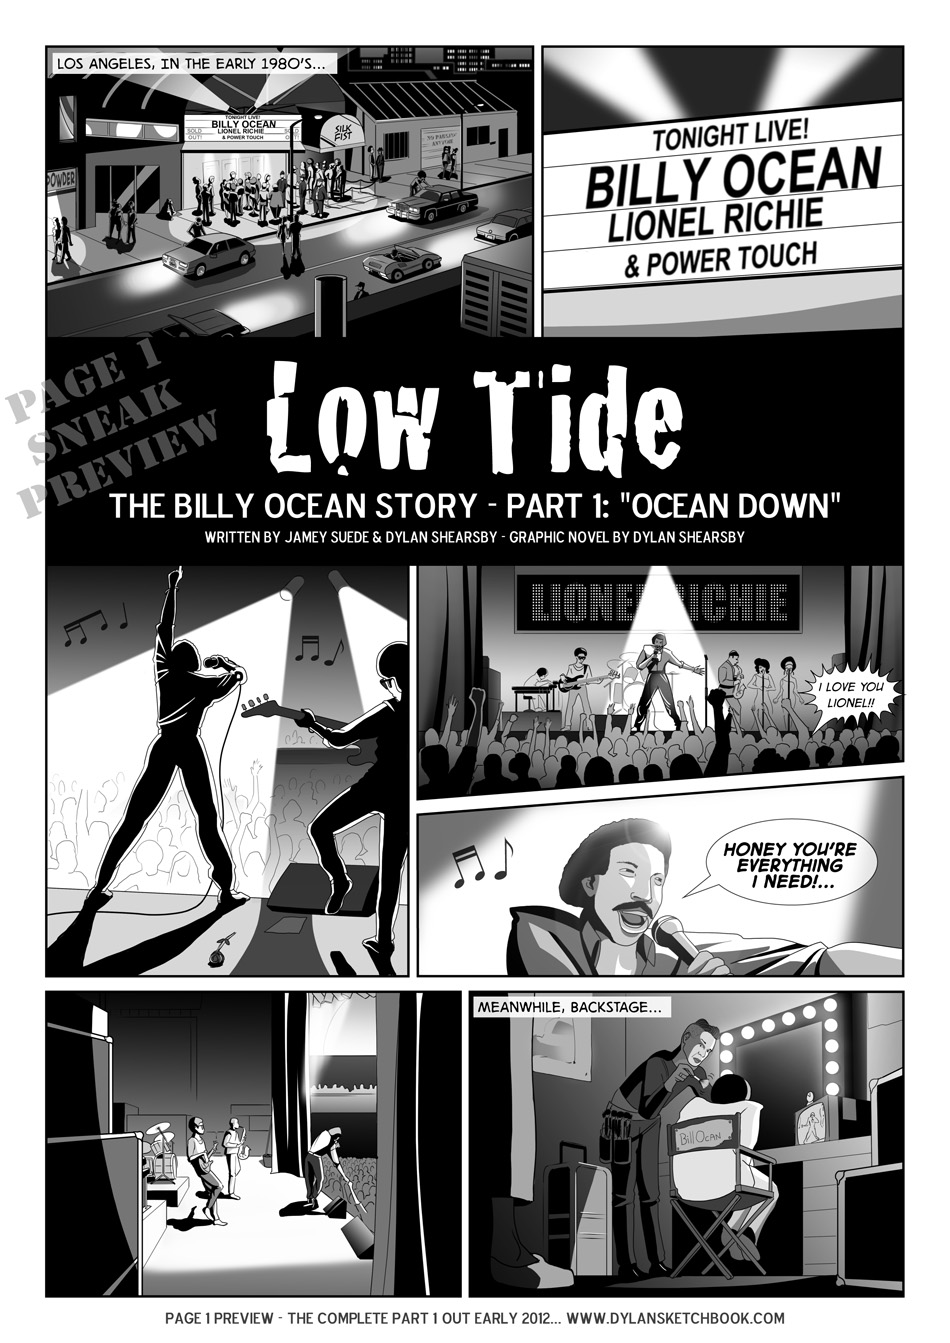 Low Tide - Sneak Preview - By Dylan Shearsby